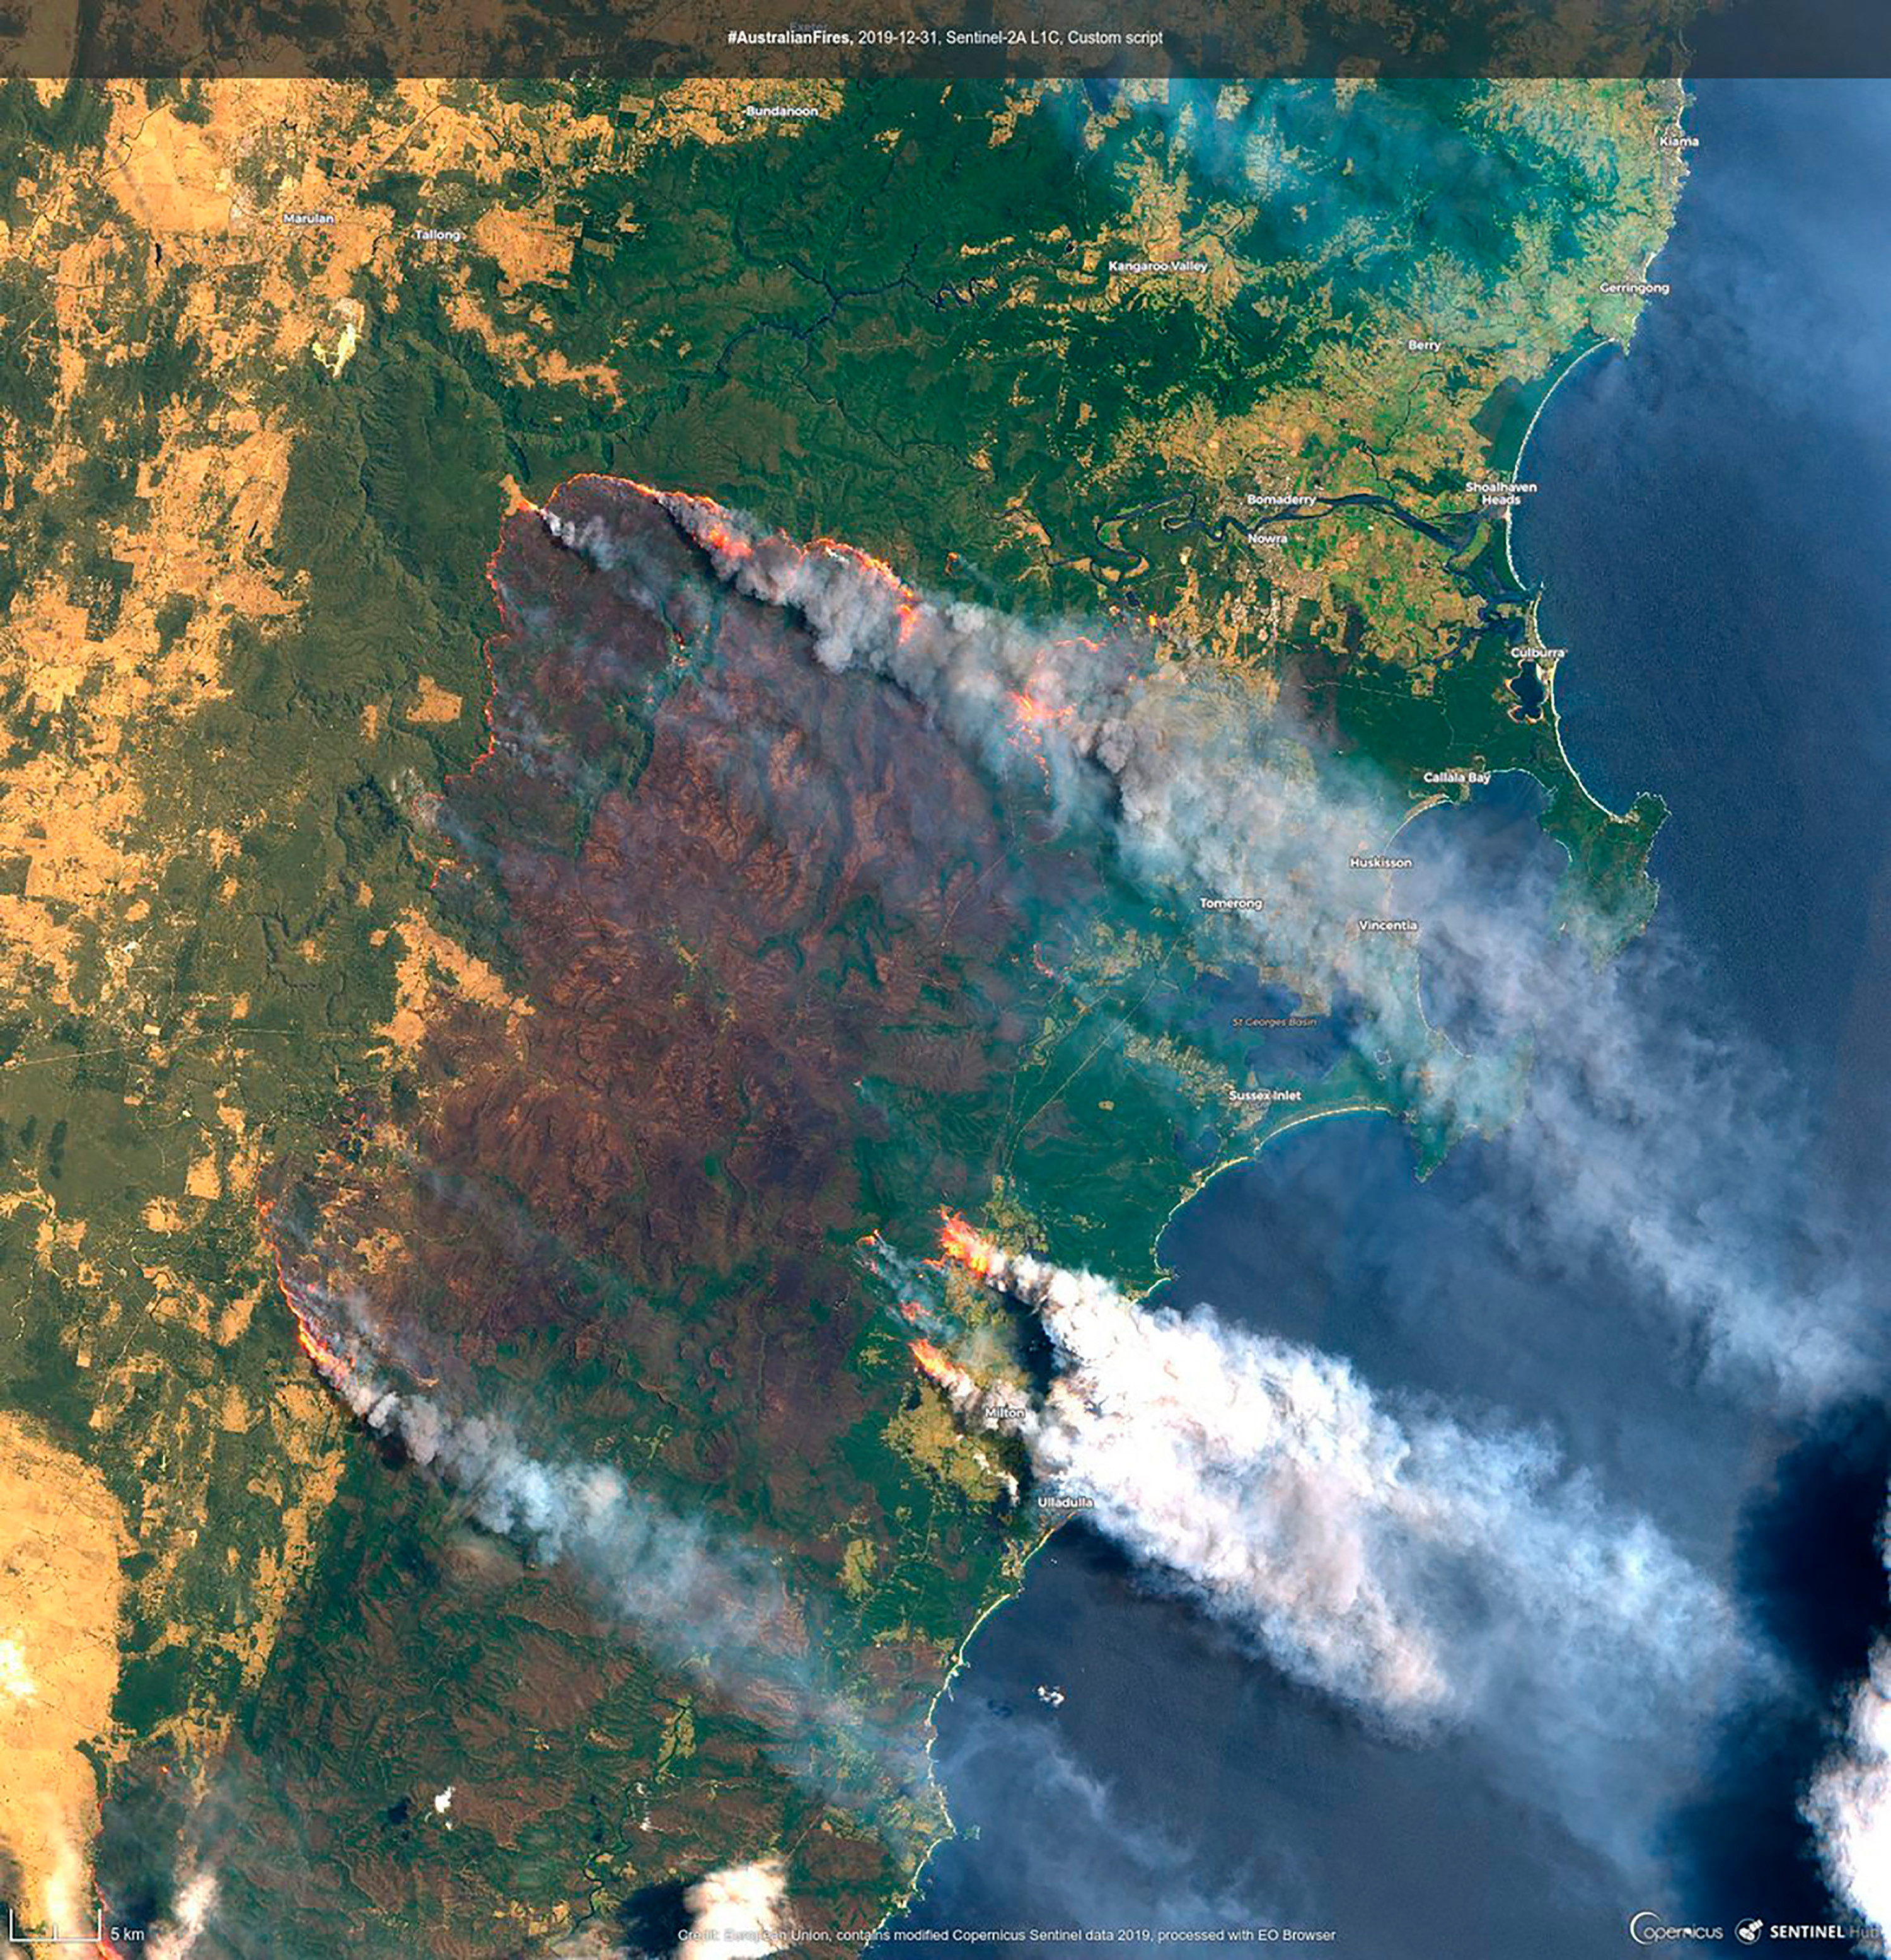 A fresh satellite image today shows fires in the Clyde Mountains south of Sydney